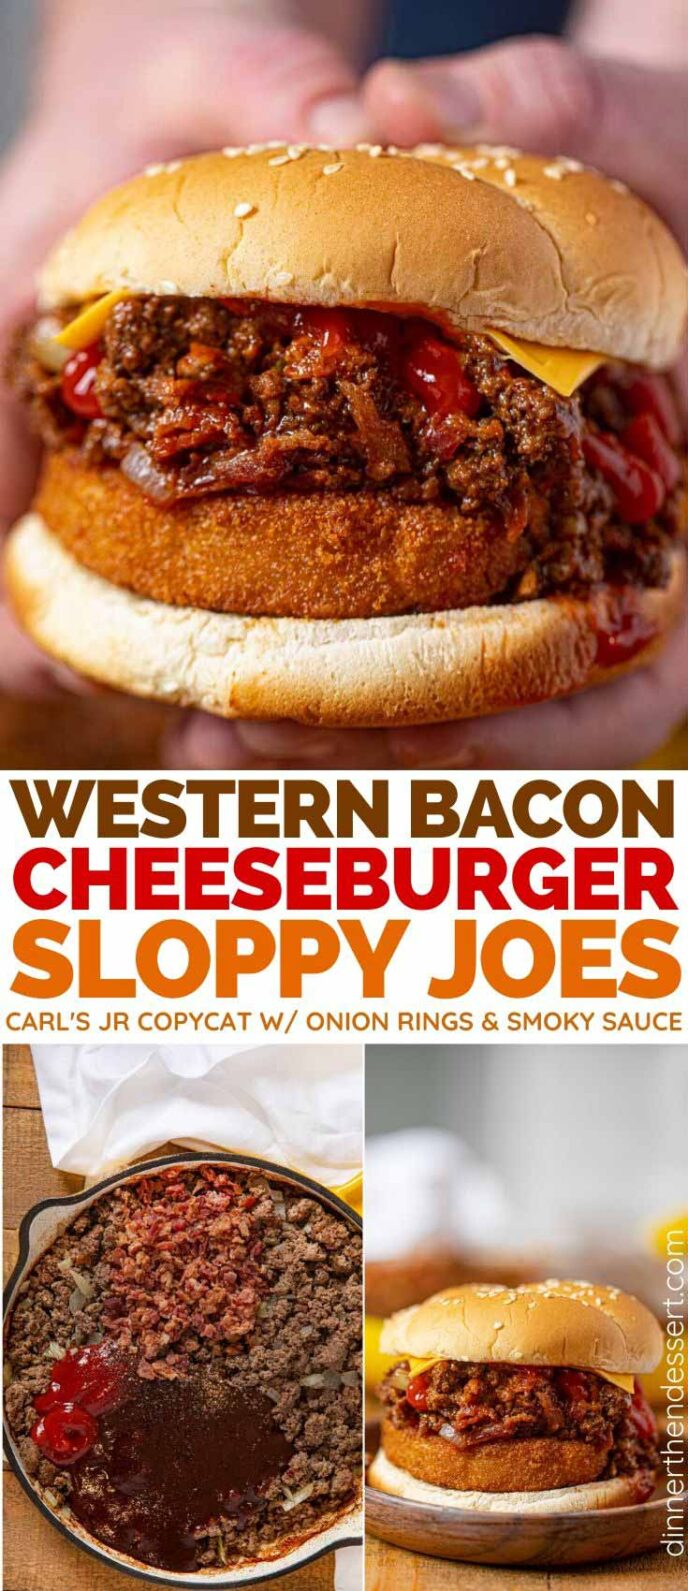 Collage photos of Western Bacon Jr. Sloppy Joes sandwich and pan with ingredients